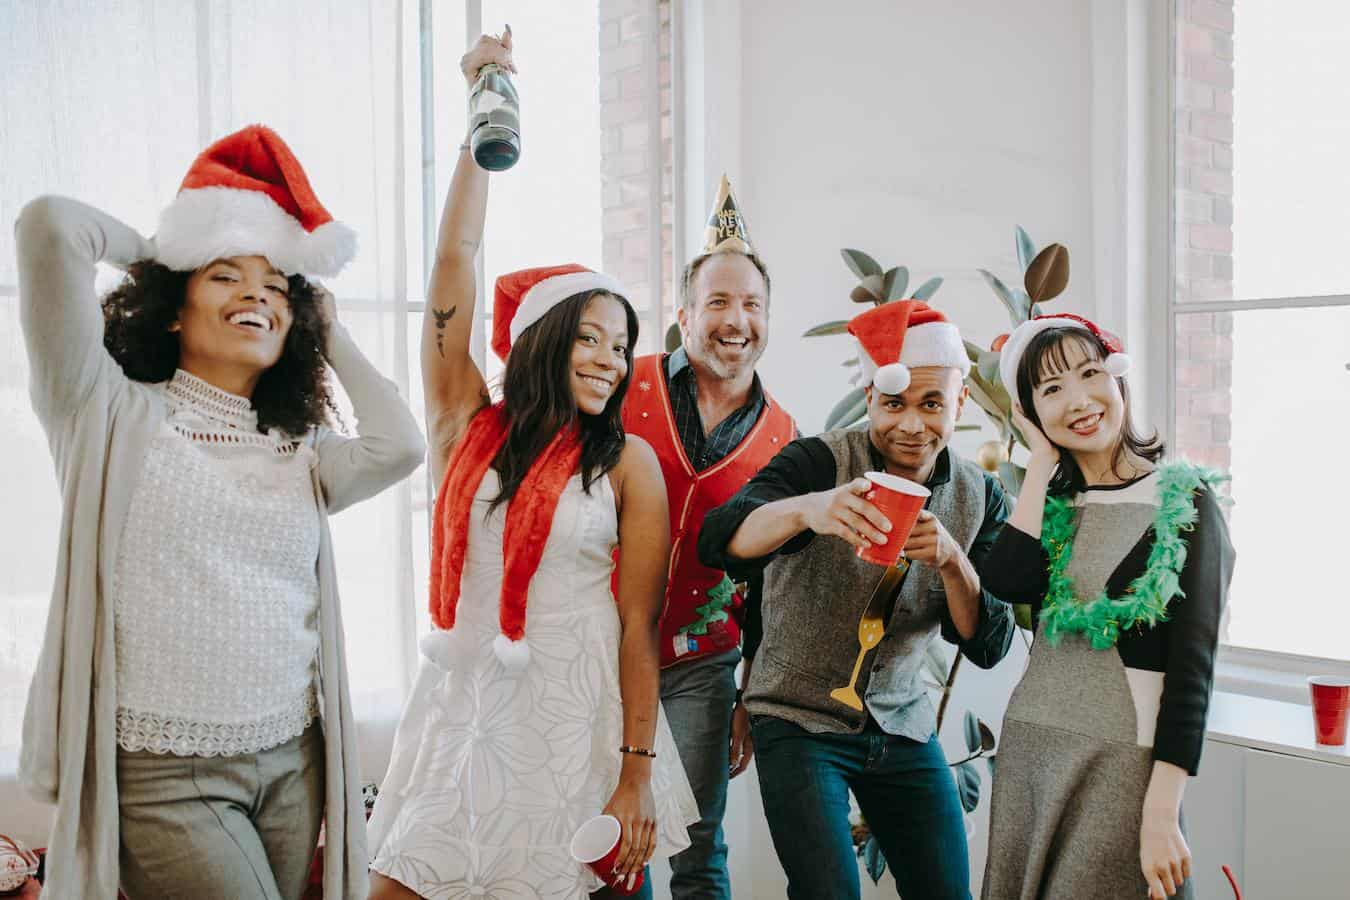 What to wear to a company holiday party